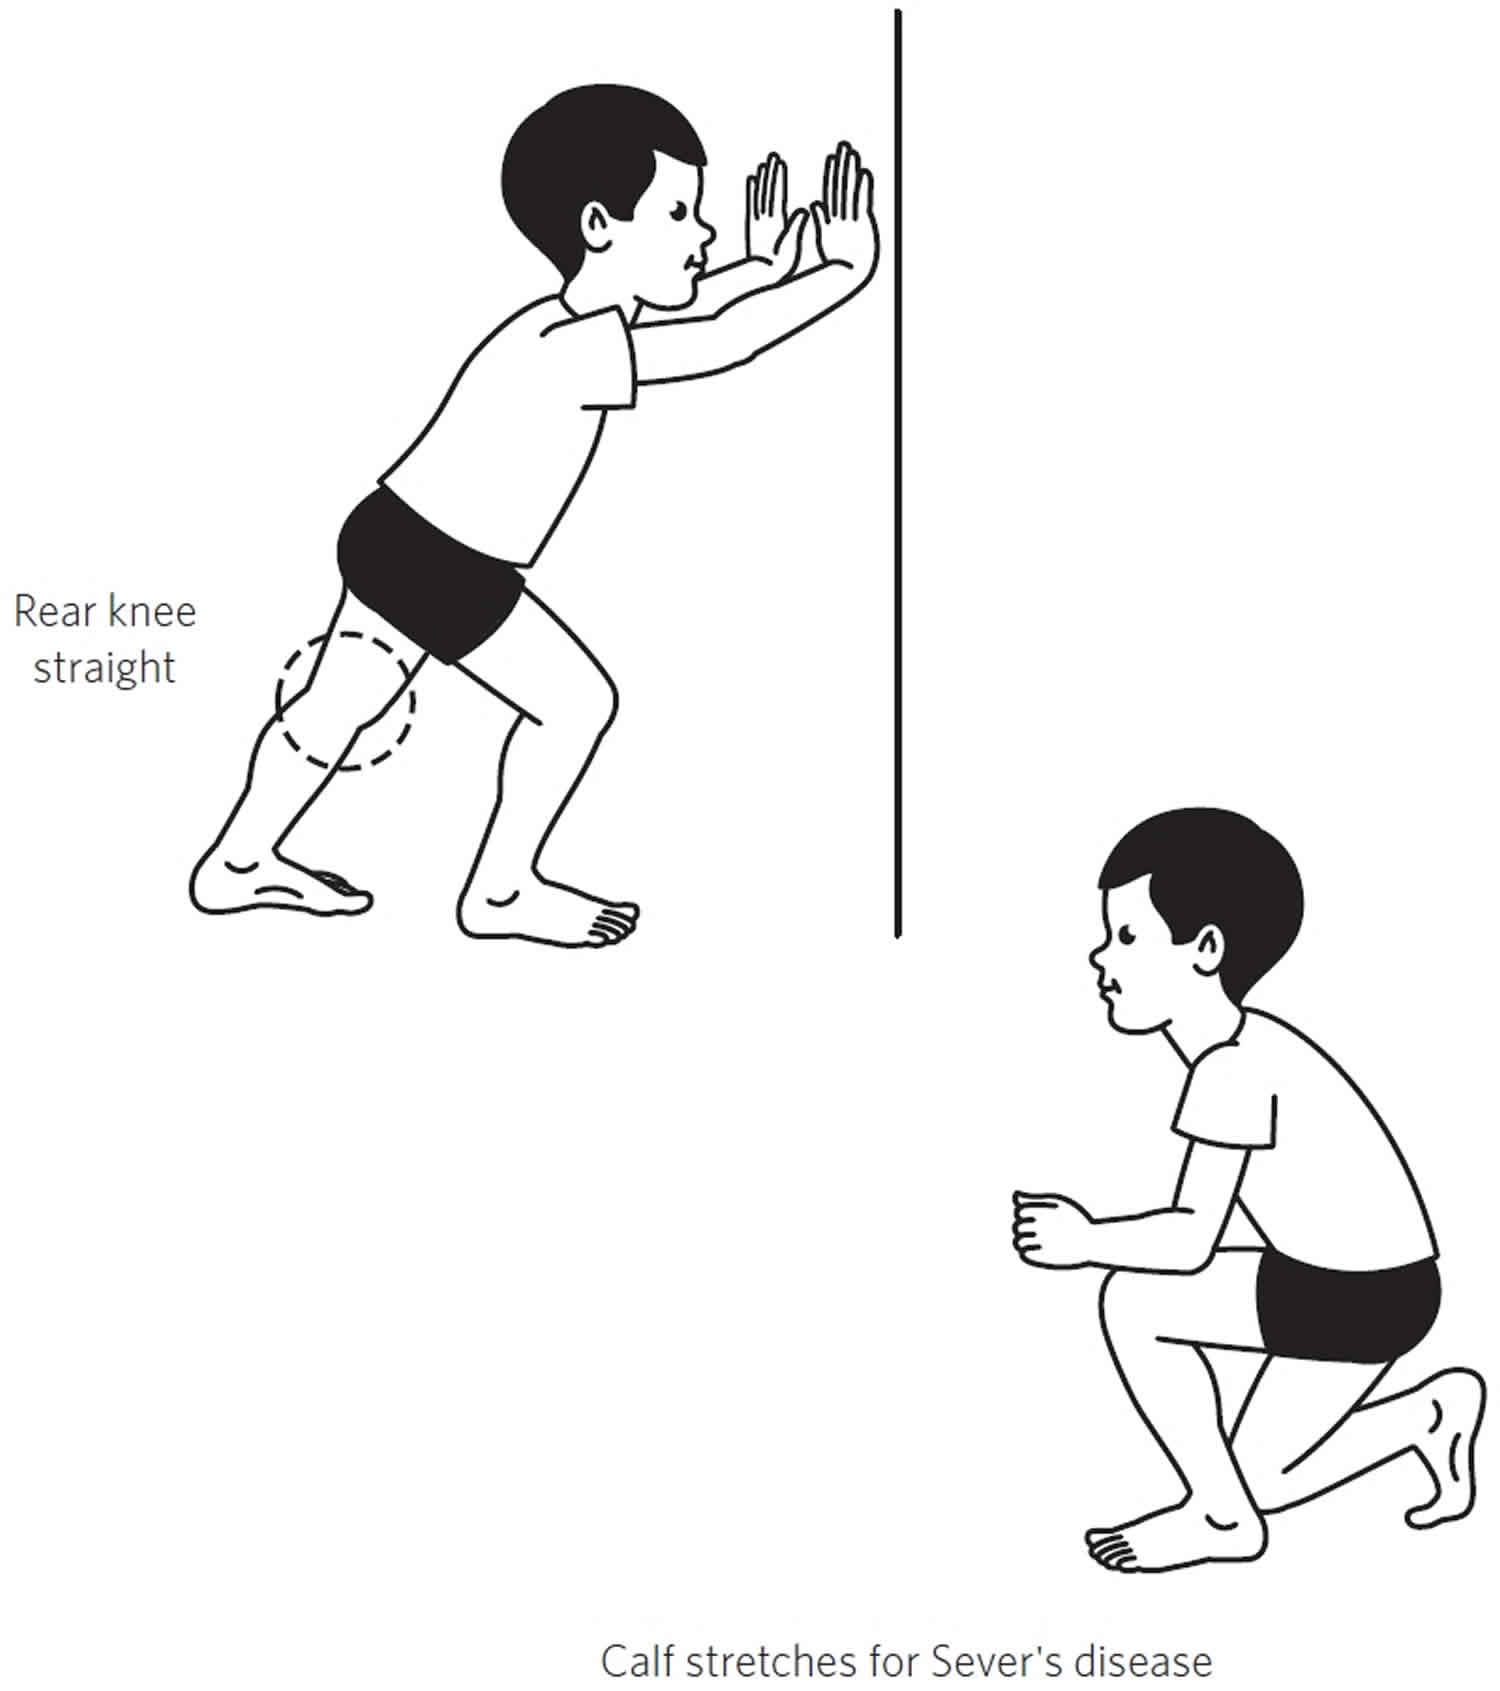 Sever's disease stretching exercises